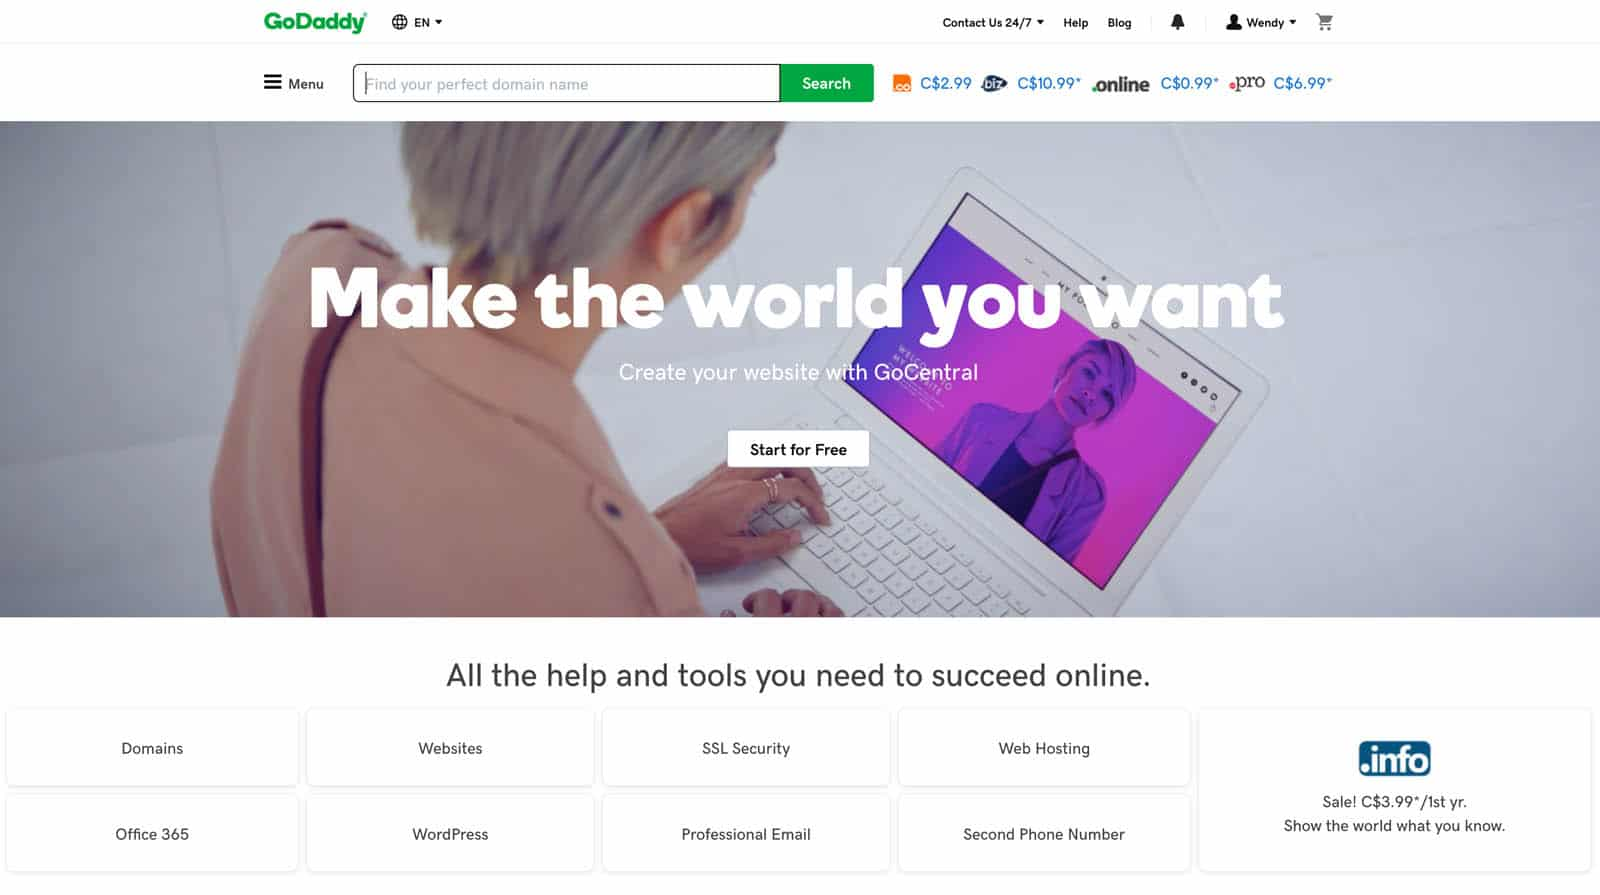 Top 10 Best Web Hosting Reviews August 2019 - Plans, Pricing & Stats